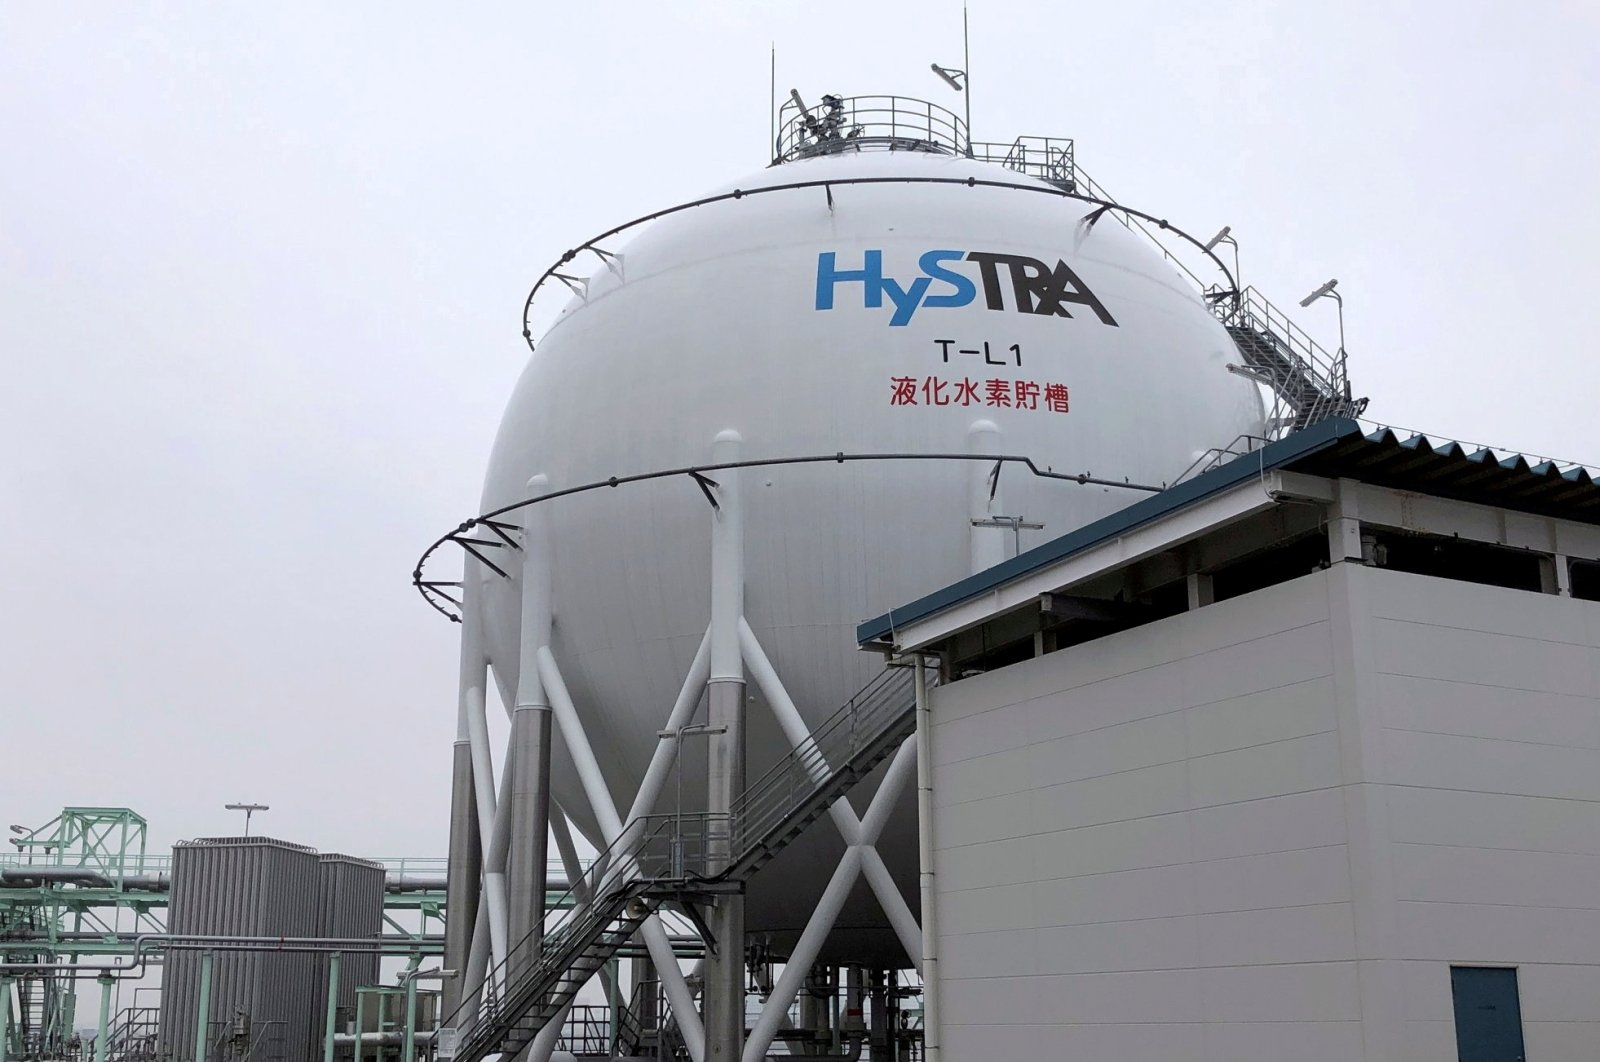 The logo of the CO2-free Hydrogen Energy Supply-chain Technology Research Association (HySTRA) is seen on a liquefied hydrogen storage tank built by Kawasaki Heavy Industries at the hydrogen receiving terminal at the Kobe Airport Island in Kobe, western Japan, Jan. 22, 2021. (Reuters Photo)